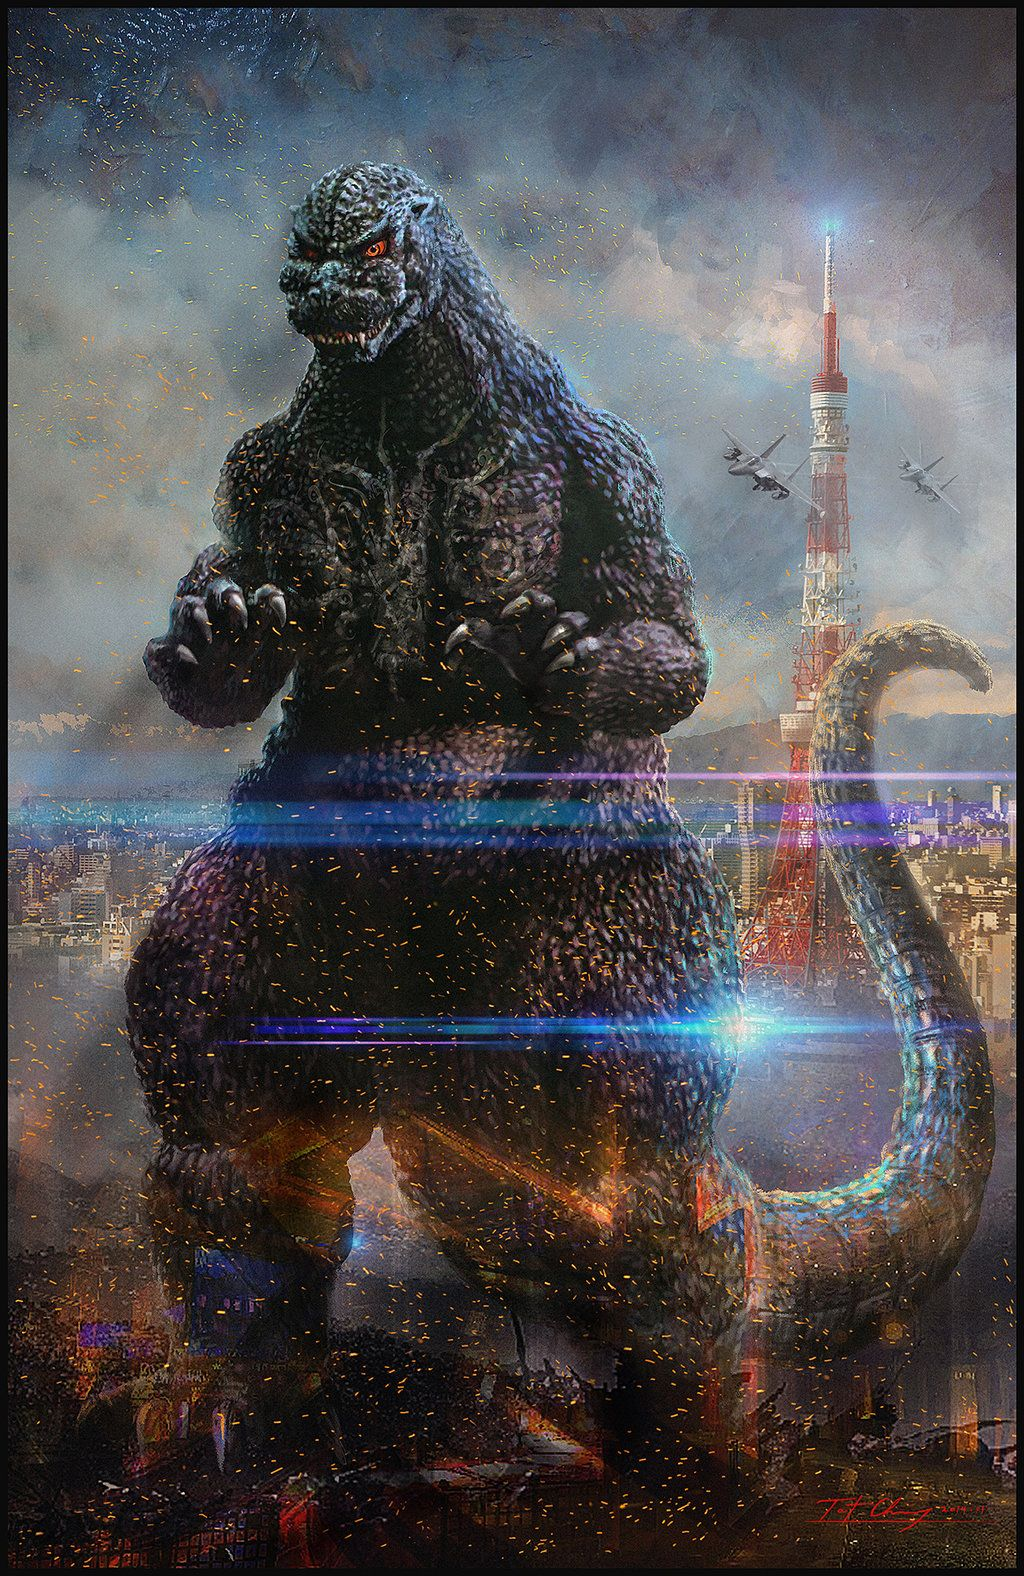 Kaiju Supreme image by The Legendary Rawnzilla Godzilla